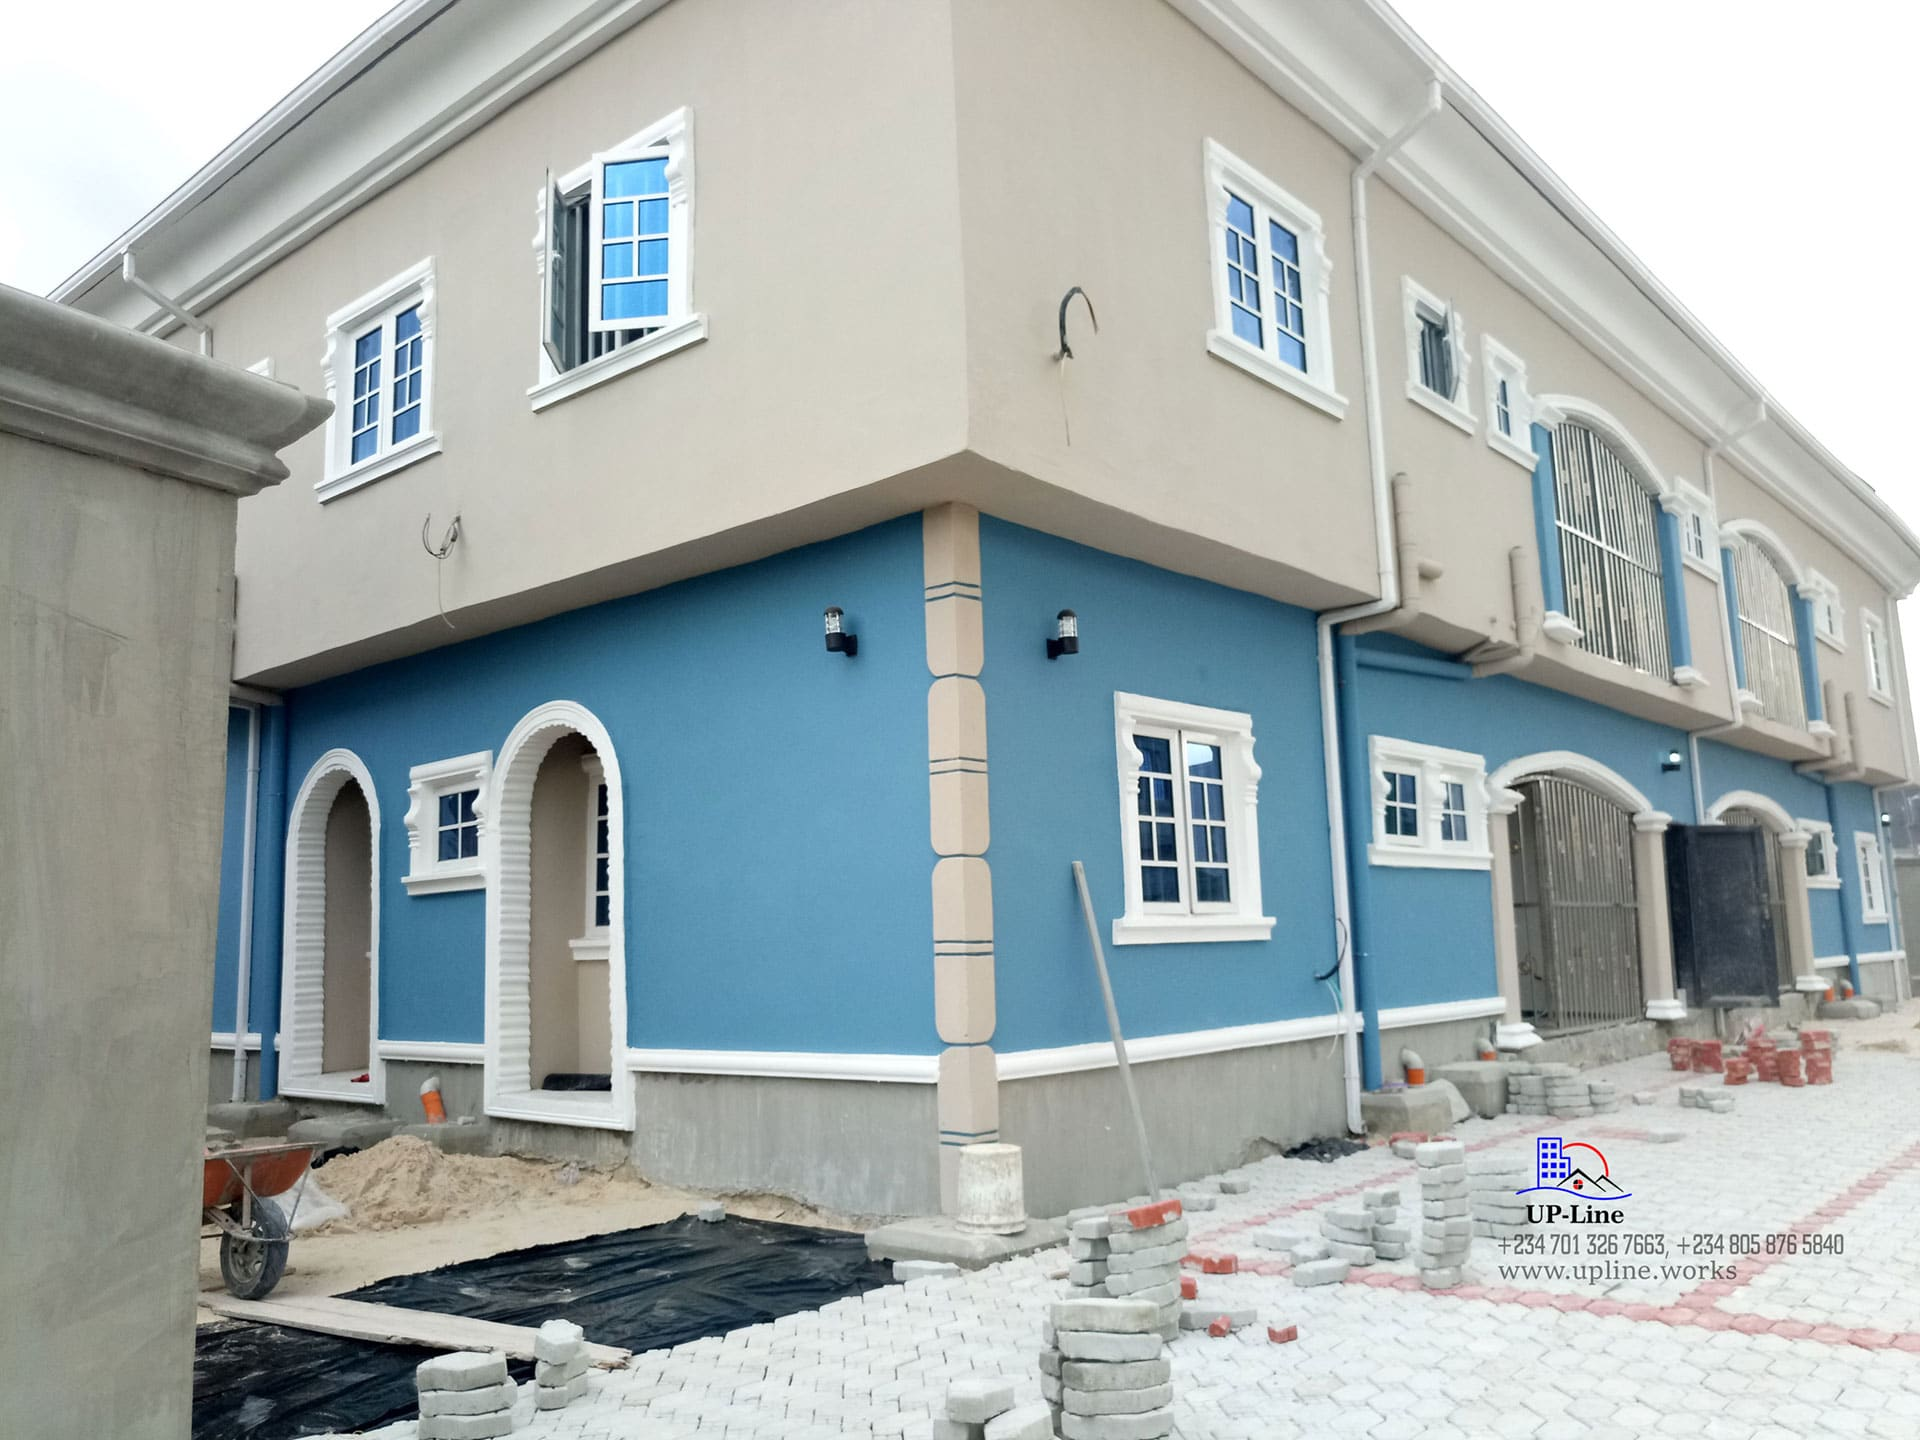 Top architectural company in Nigeria